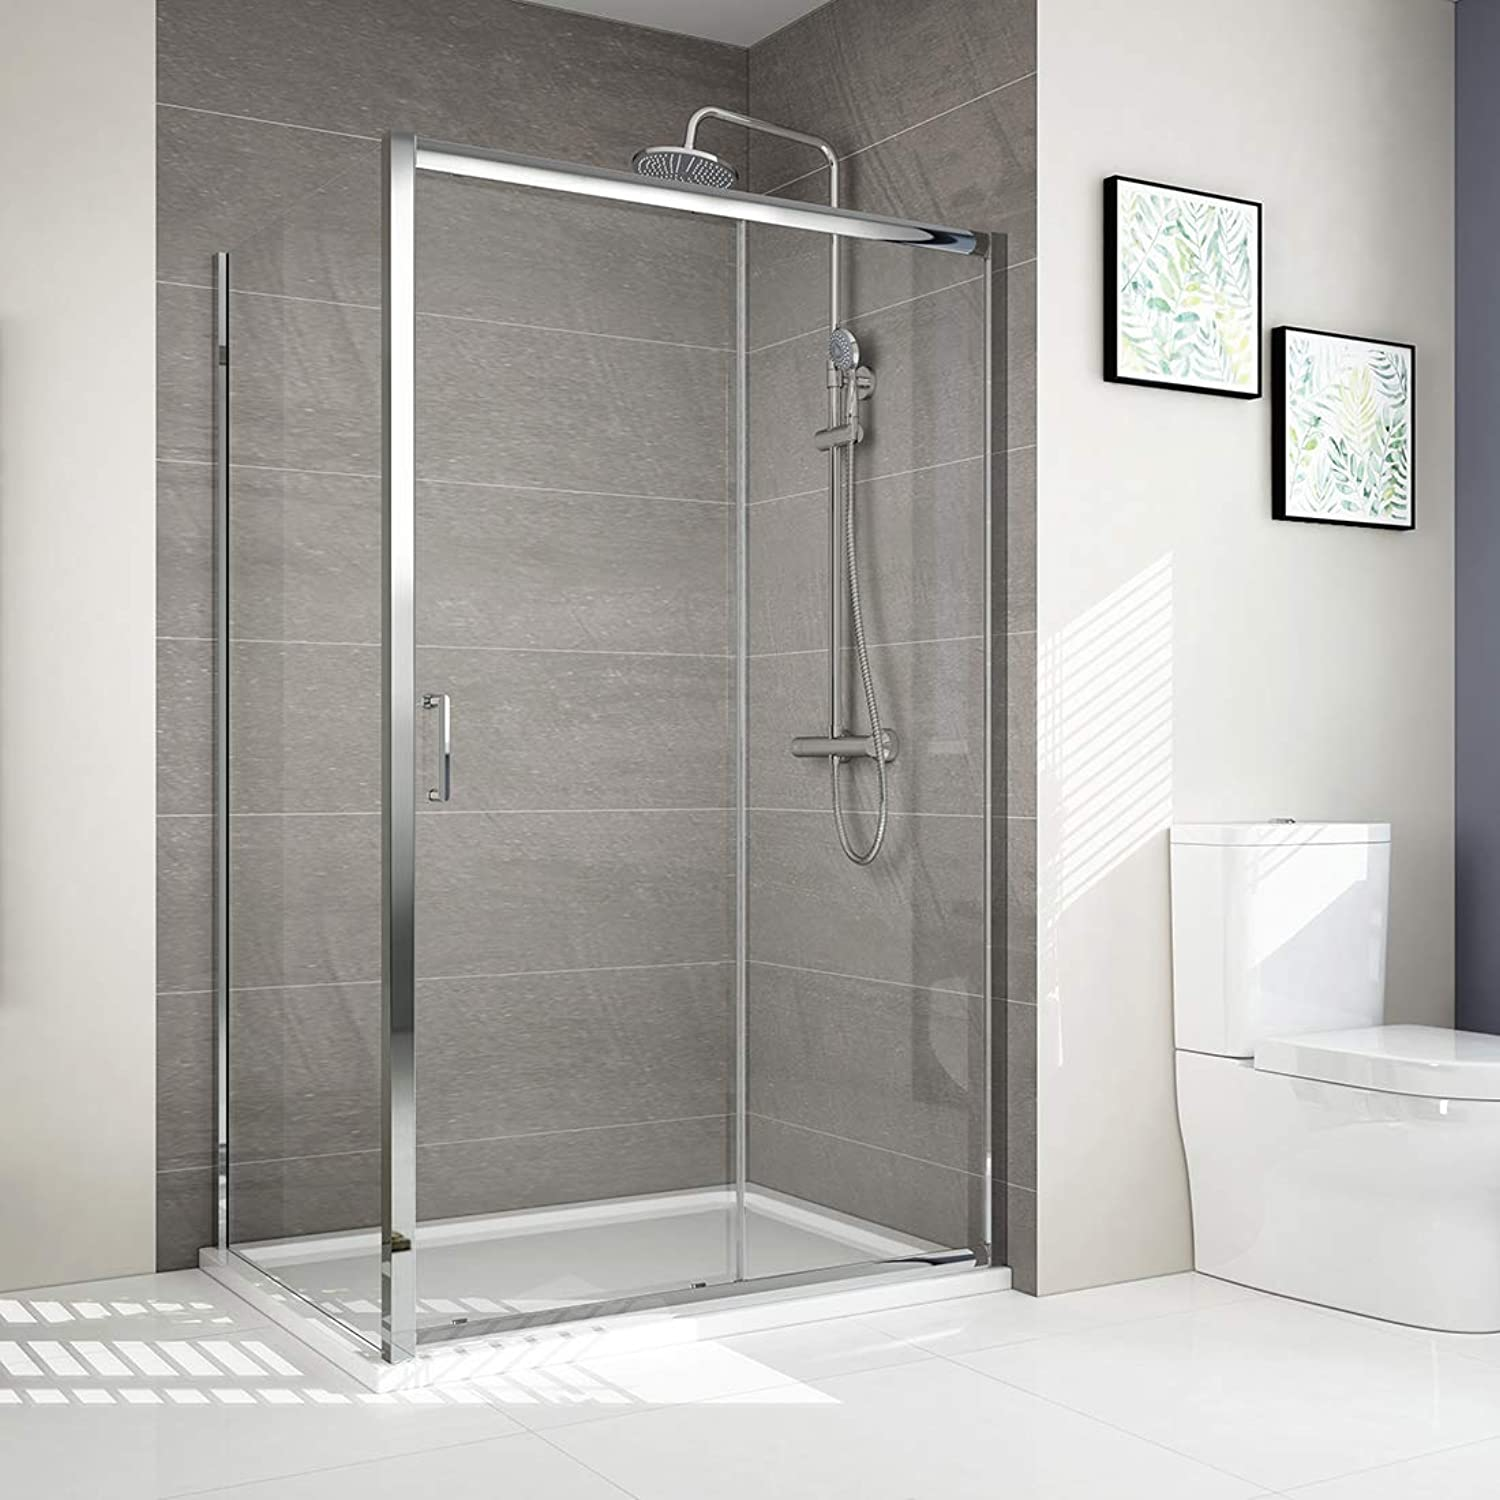 1200 x 760 mm Sliding Shower Enclosure 6mm Tempered Easy Clean Glass Bathroom Sliding Shower Door Shower Cubicle with Side Panel